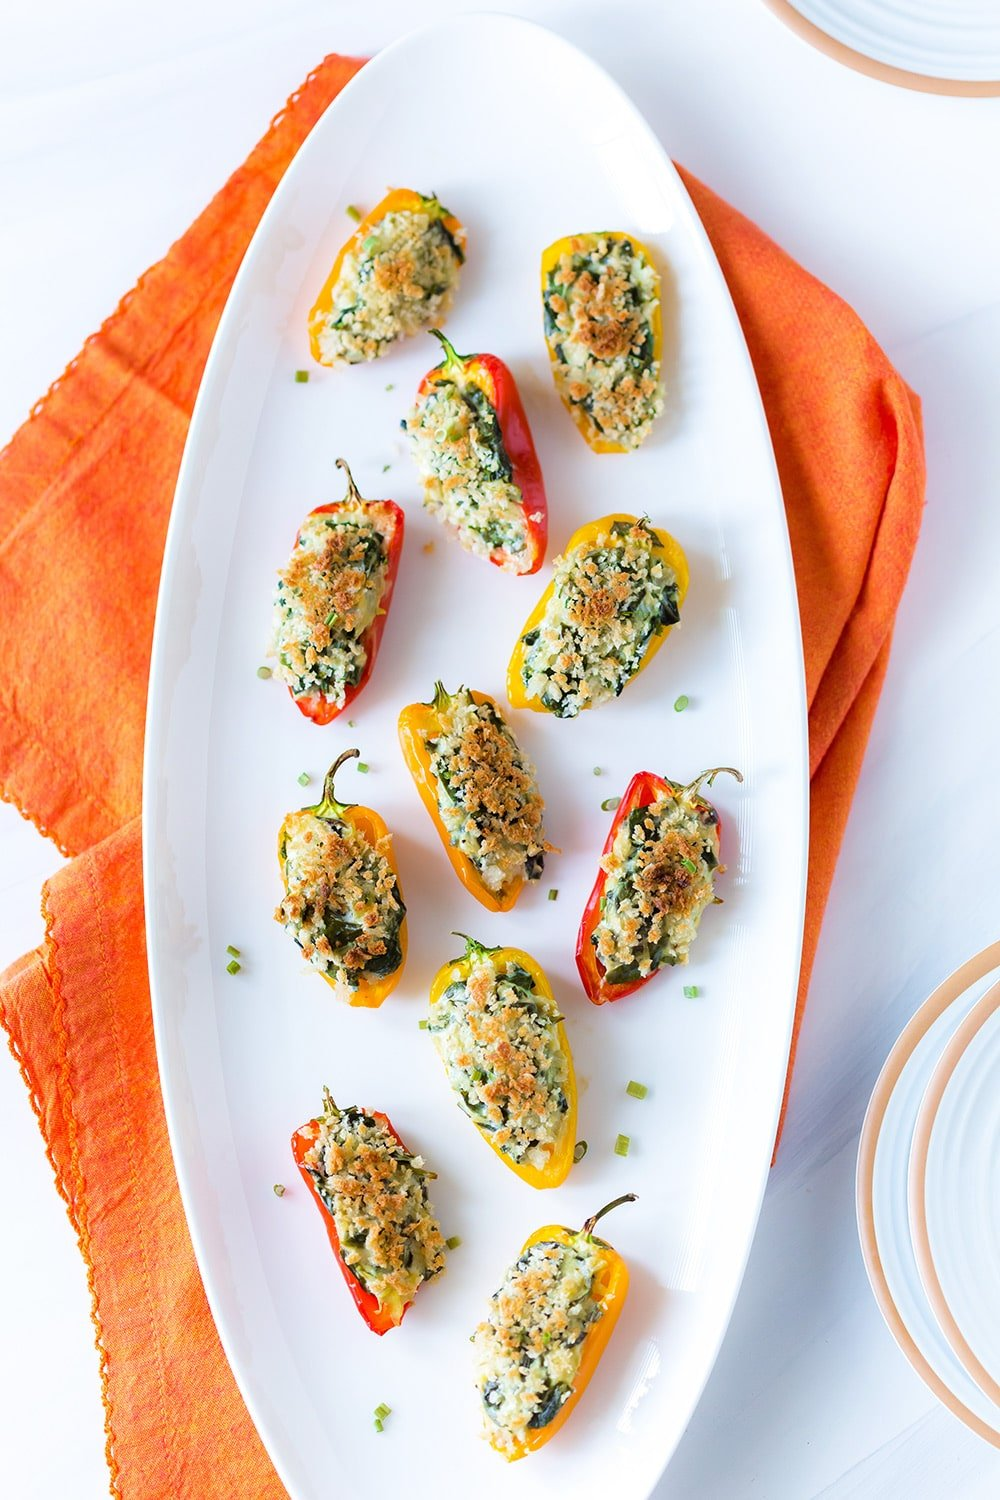 Spinach Artichoke Stuffed Mini Peppers - Healthy Appetizer Ideas